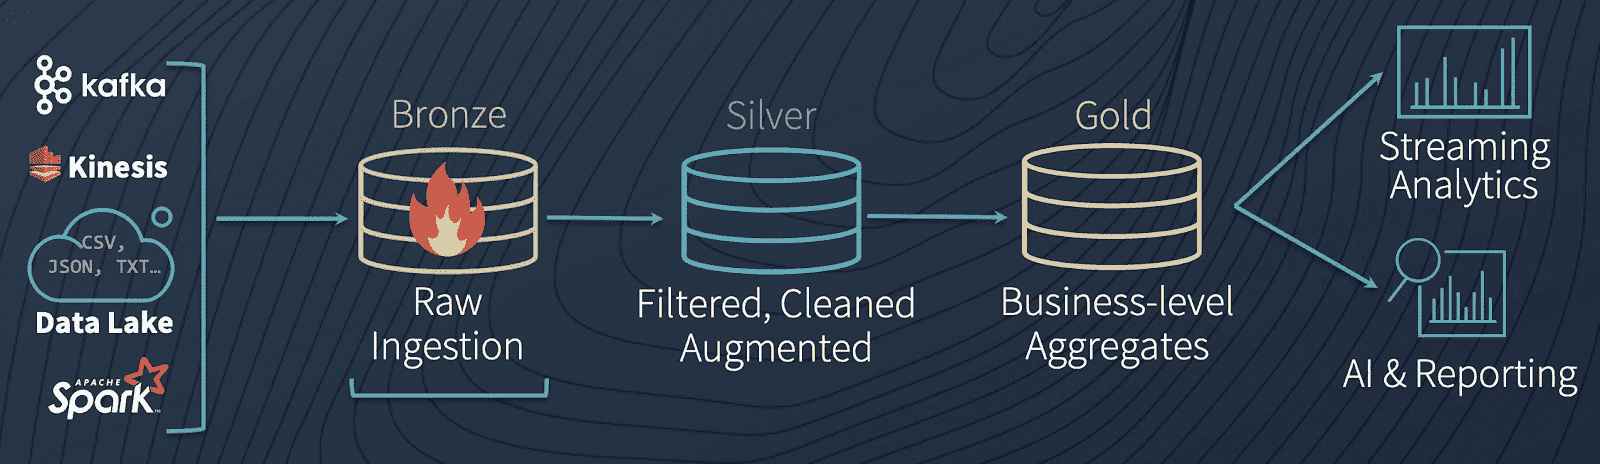 Delta Architecture diagram, highlighting the Bronze stage (raw data ingestion) of the machine learning pipeline.